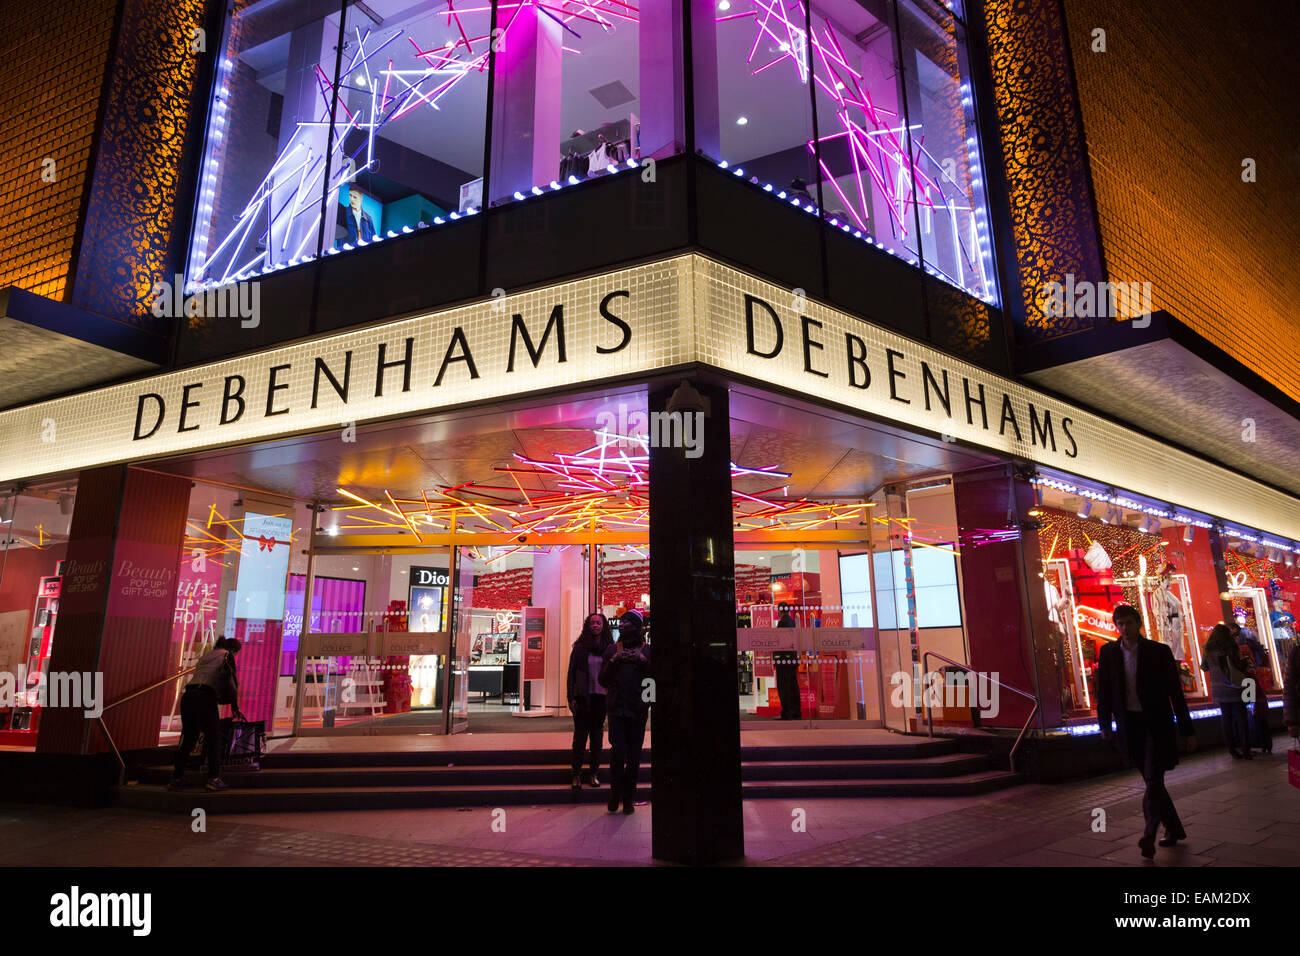 debenhams department store with christmas lights in oxford street london england uk - Christmas Light Store